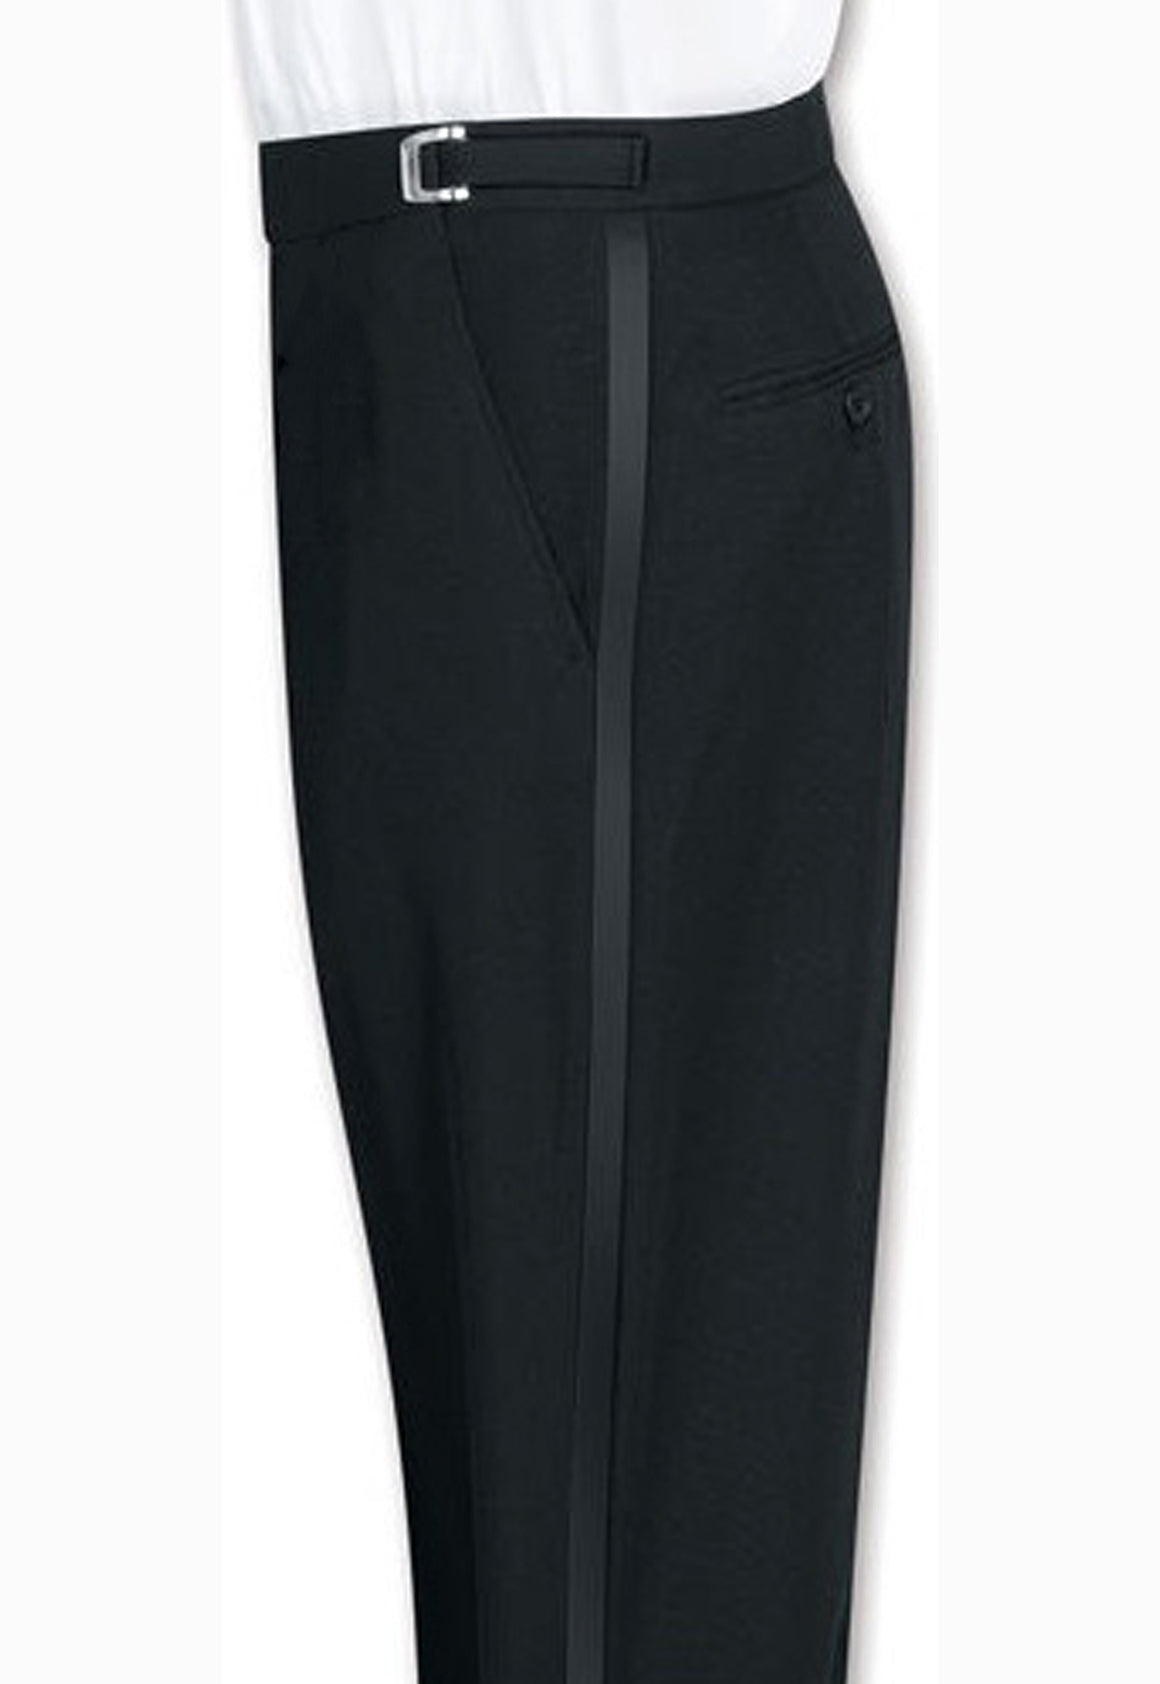 Men's Black, Adjustable-Waist, Flat Front Tuxedo Pants with Satin Stripe